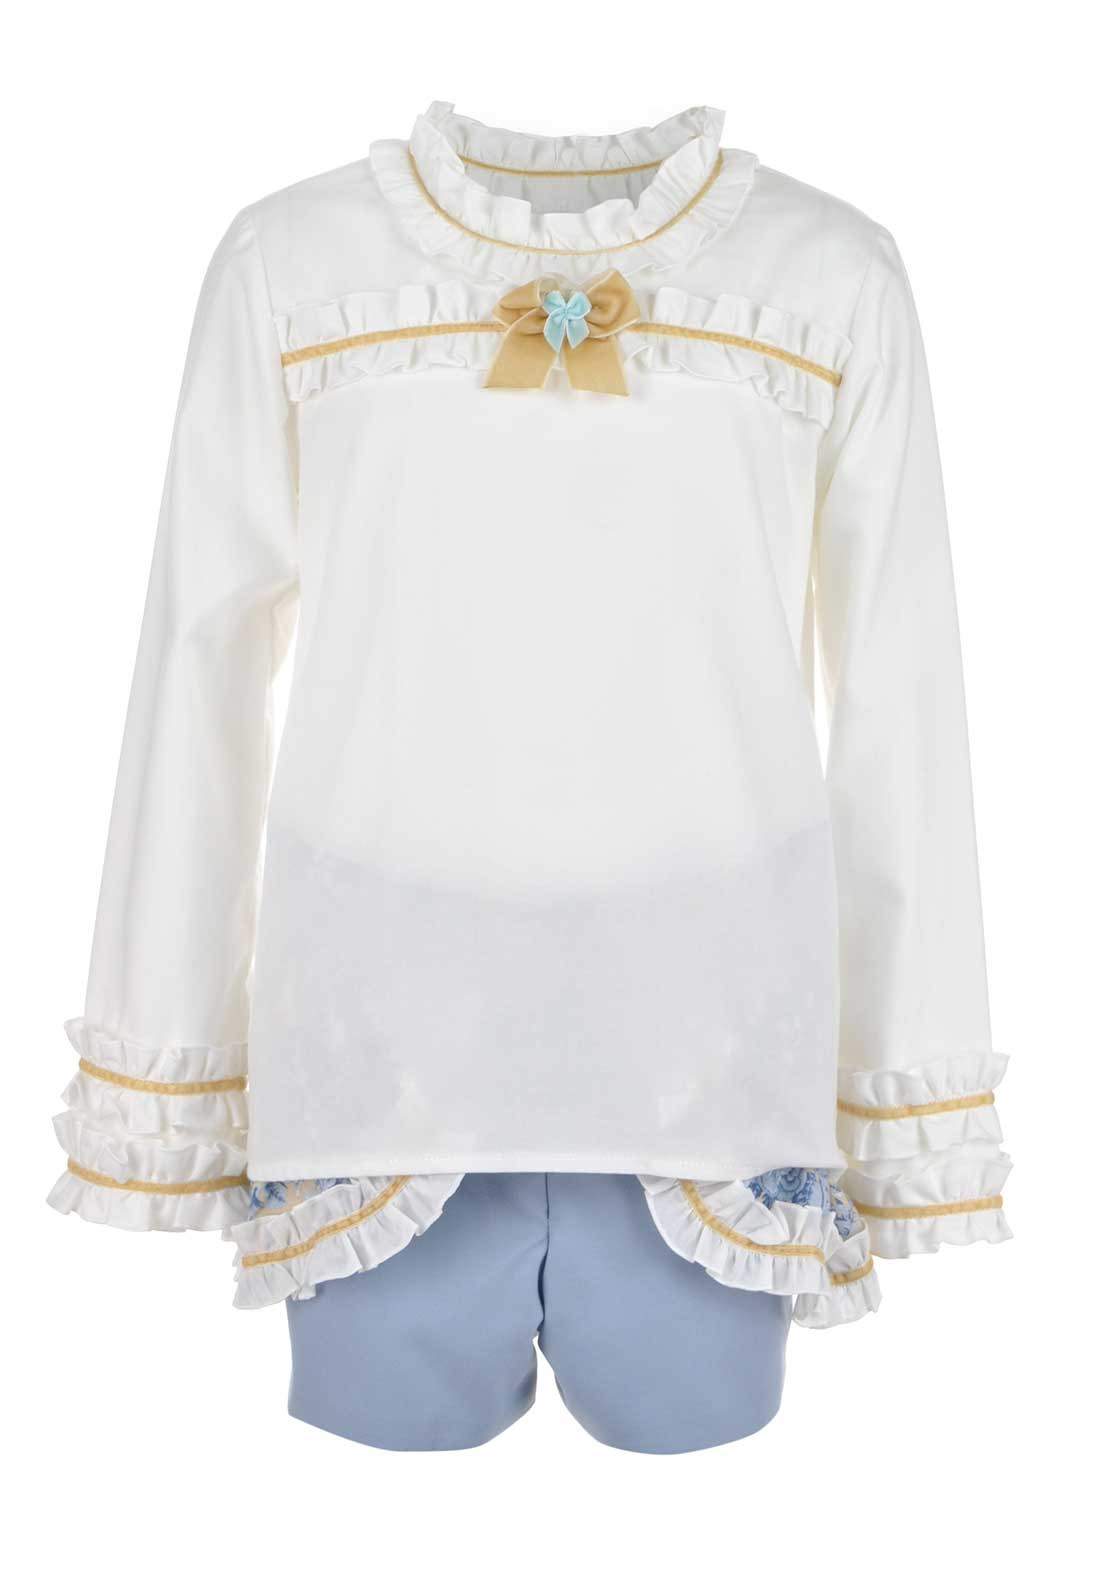 Bea Cadillac Girls long Sleeve Frilled Top and Shorts Set, White and Blue